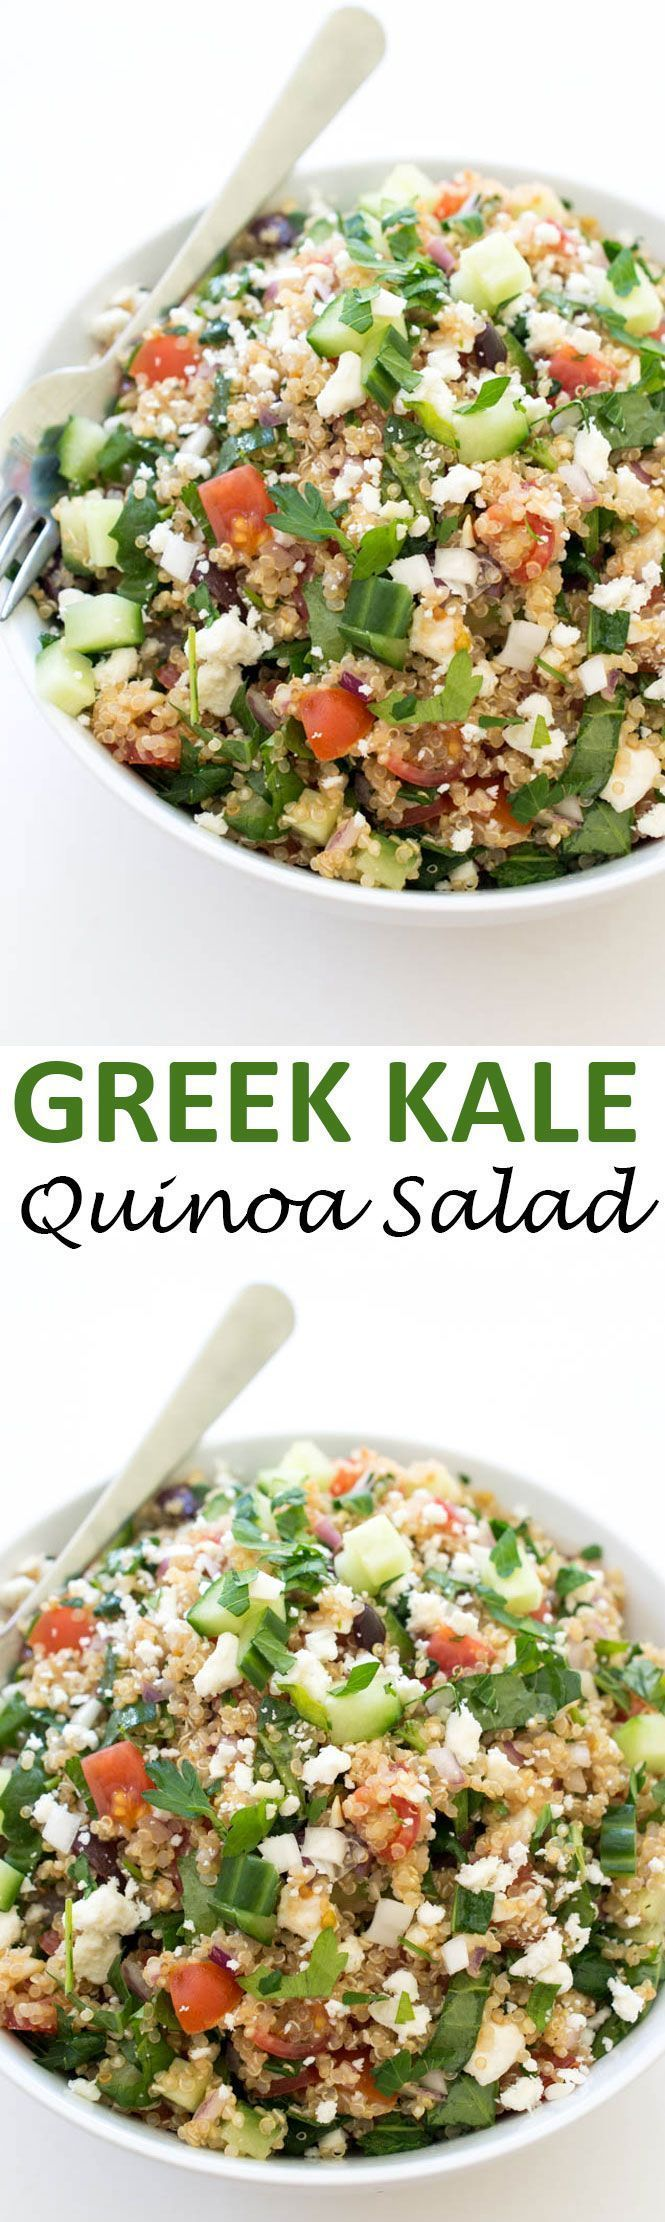 30 Minute Greek Kale Quinoa Salad. Loaded with tons of vegetables and tossed with lemon and olive oil! | chefsavvy.com #recipe #greek #kale #quinoa #salad #healthy